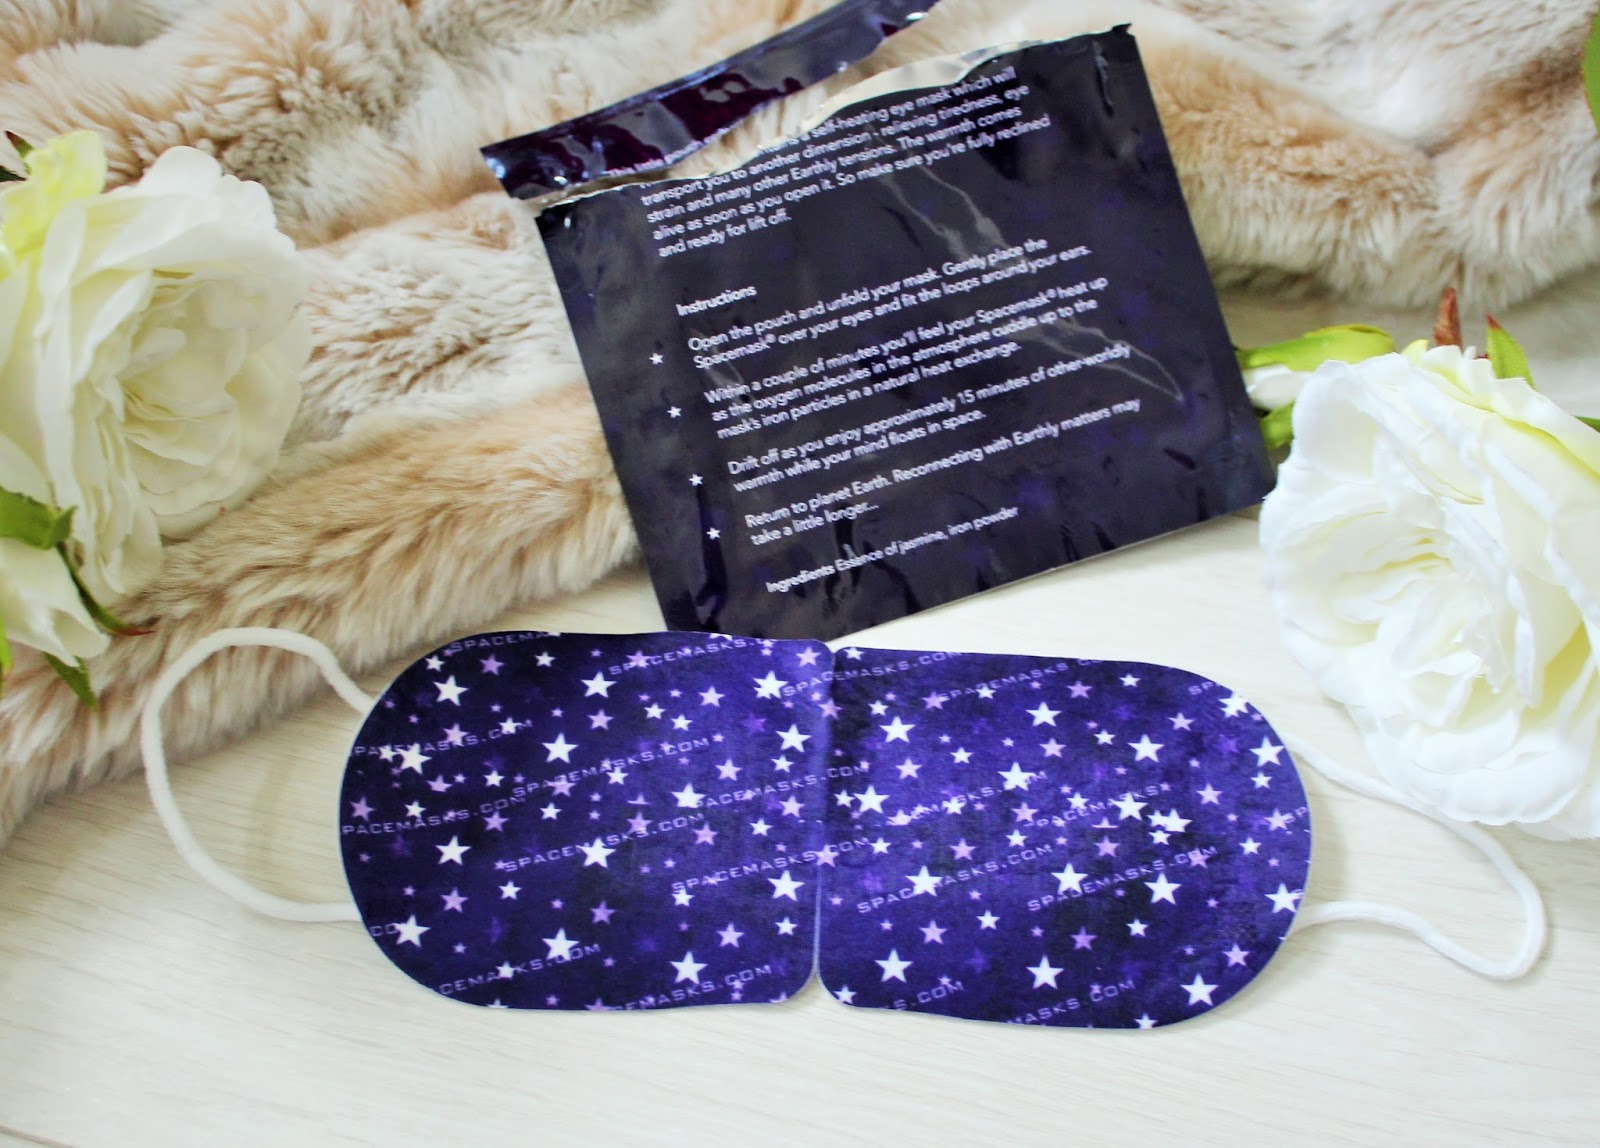 Starskin Smoothing Bio-Cellulose Second Skin Eye Masks And Spacemasks Aromatherapy Eye Mask